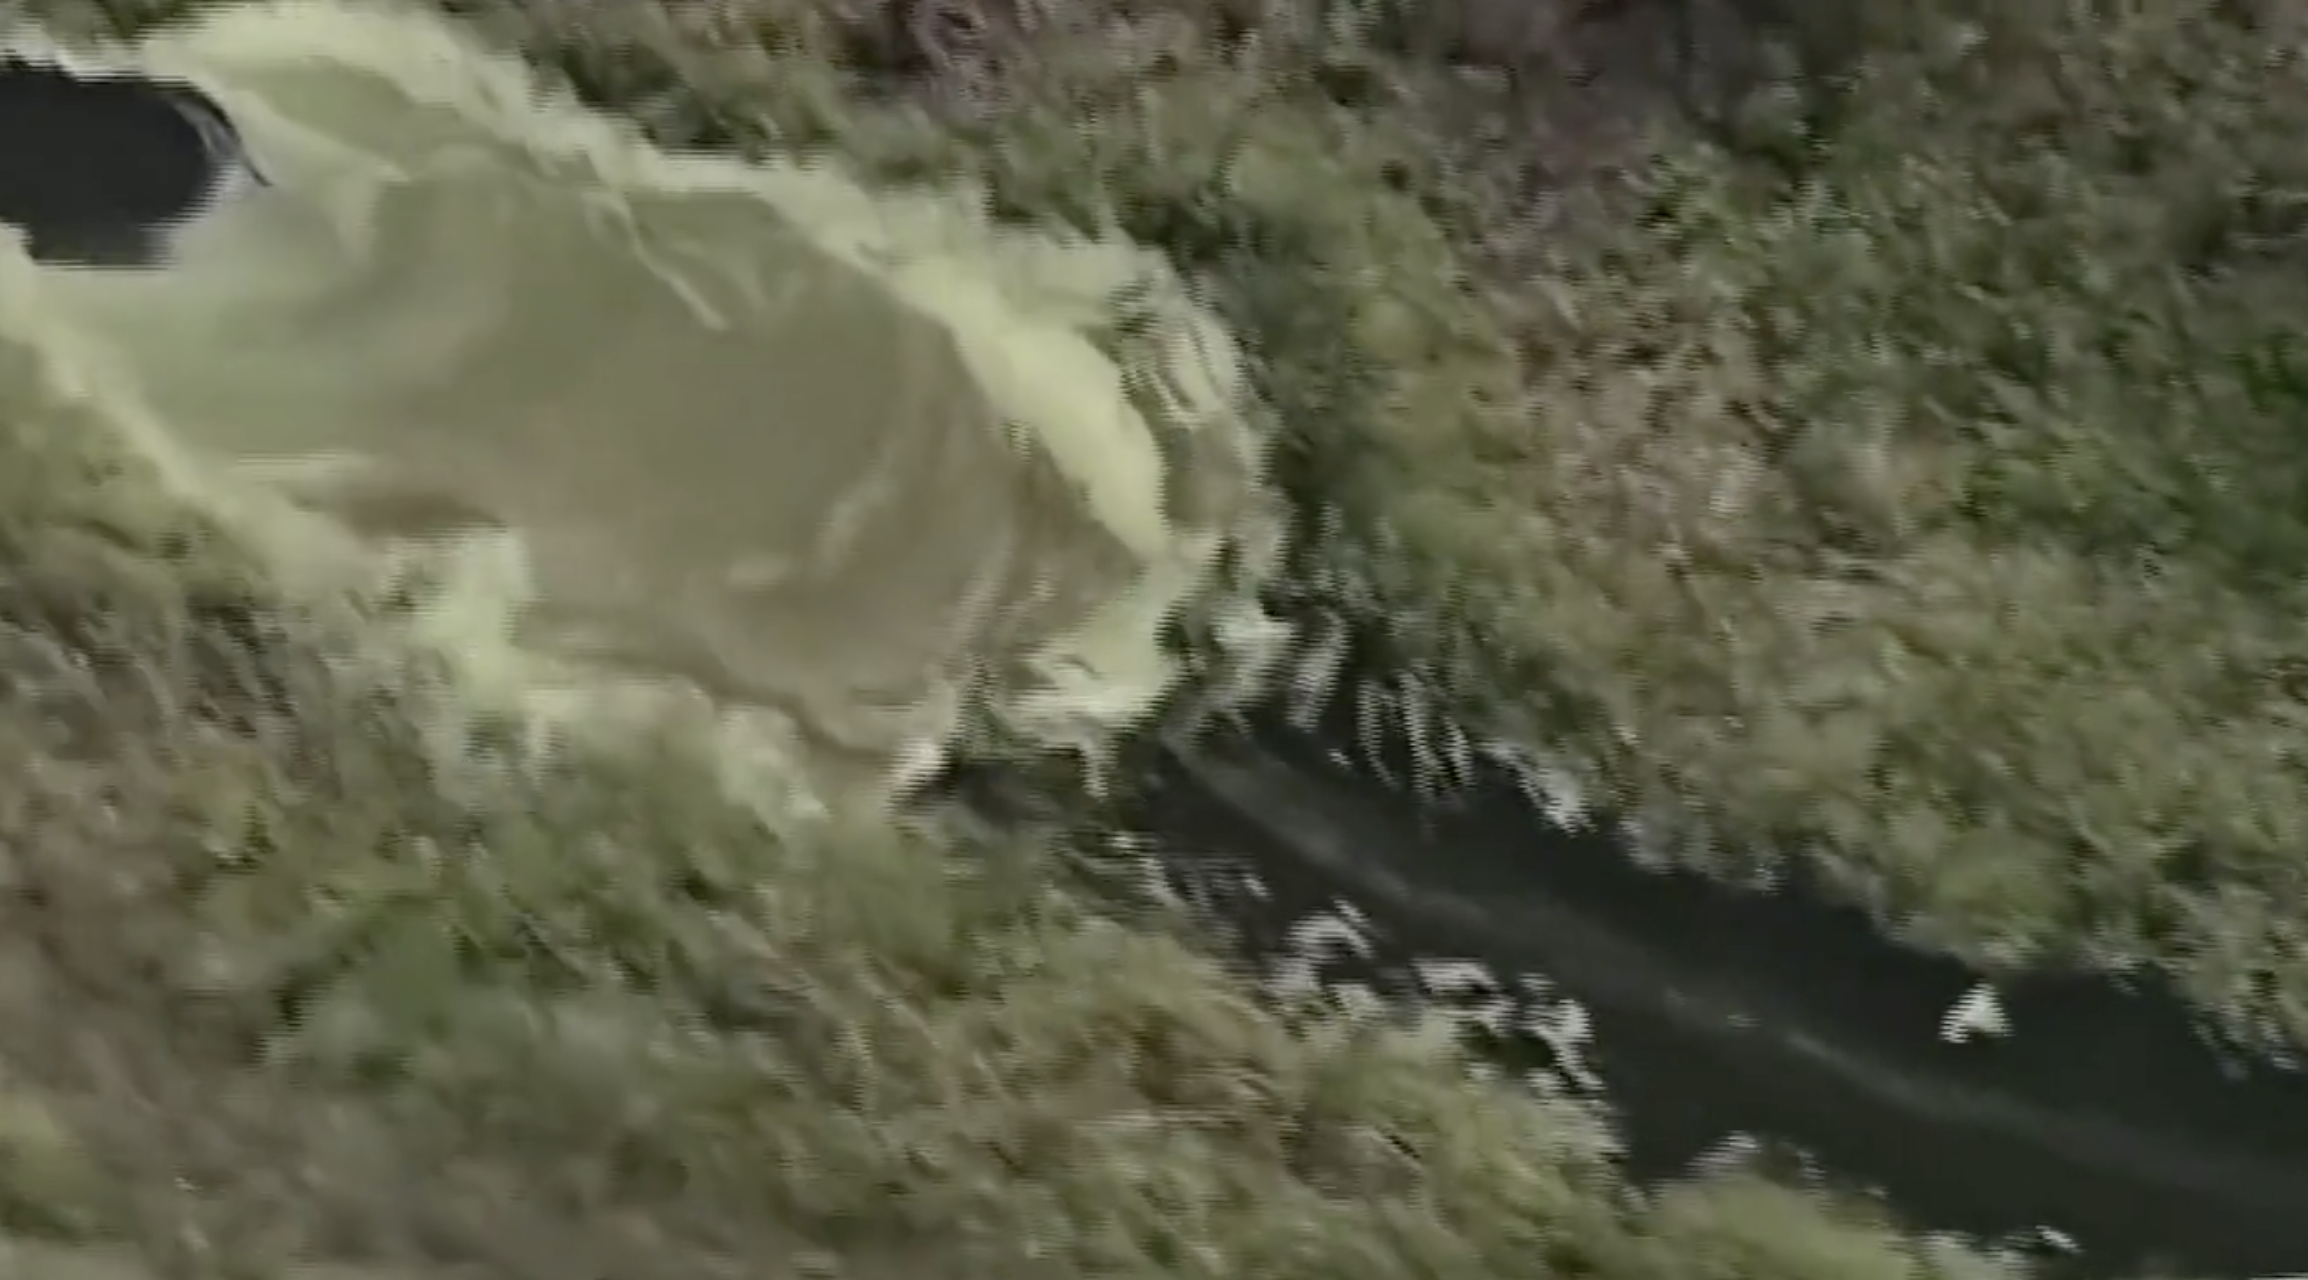 Piney Point toxic waste leak